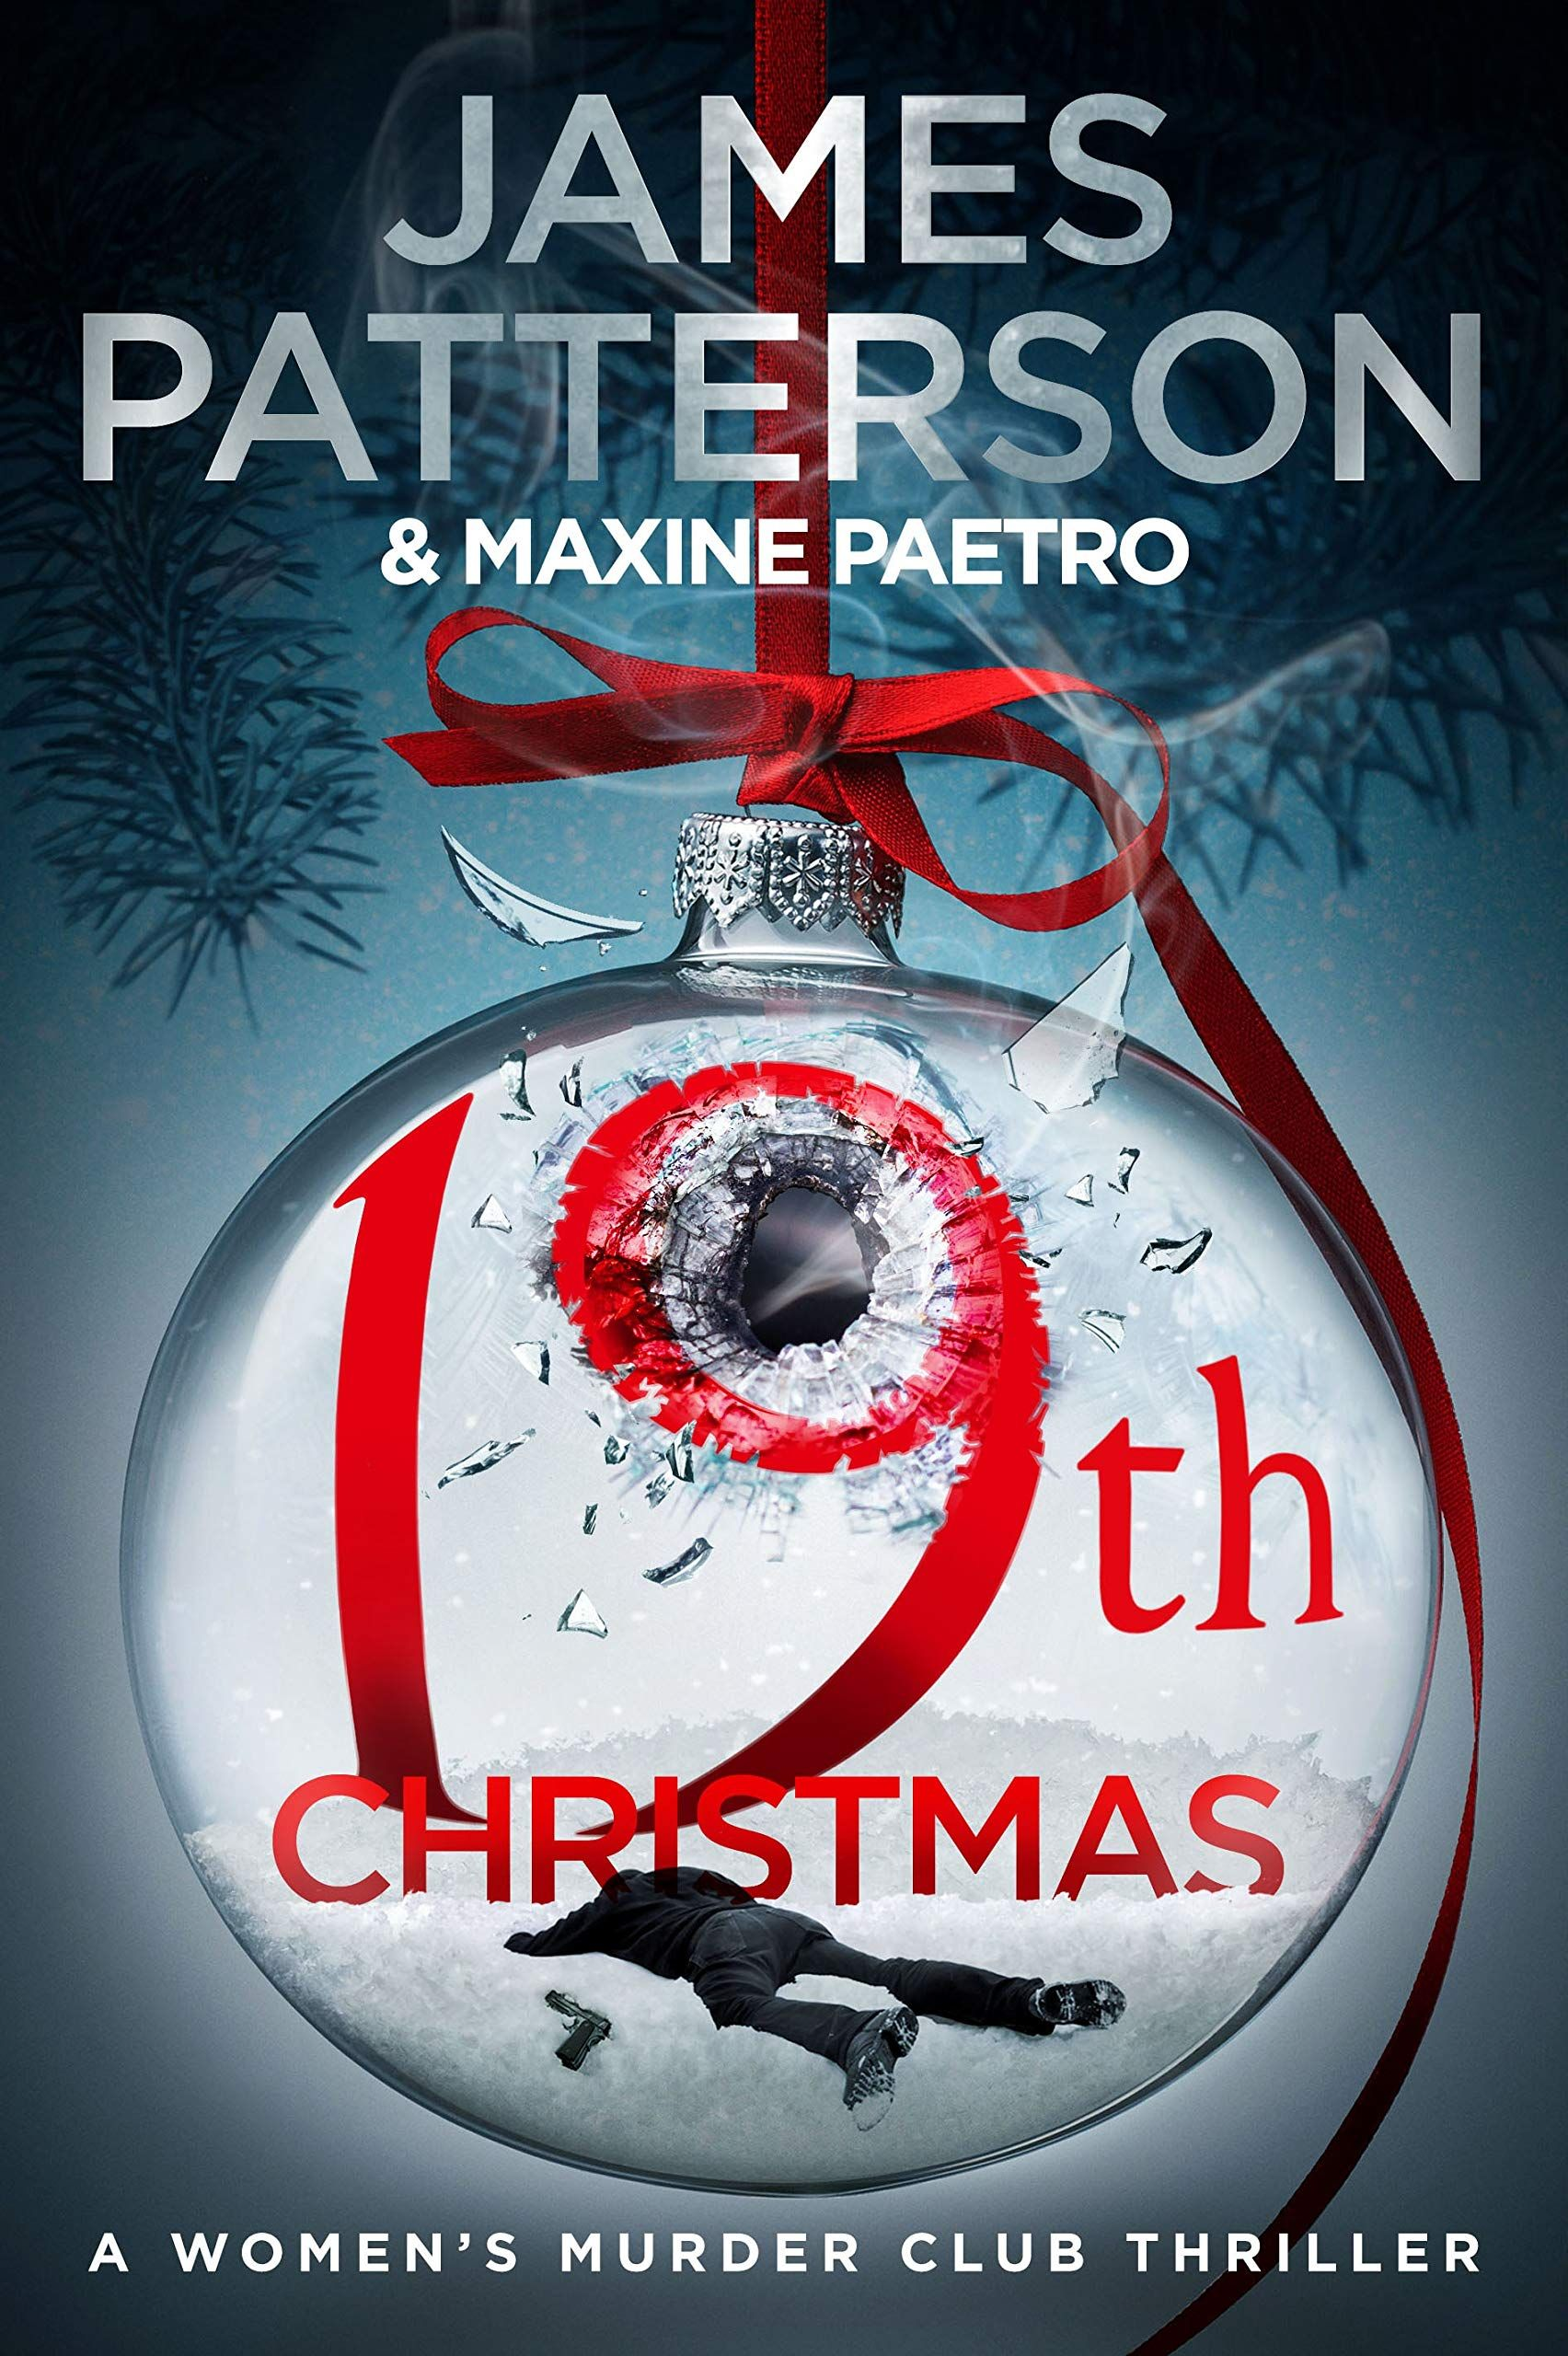 Pdf The 19th Christmas By James Patterson James Patterson Patterson Book Addict